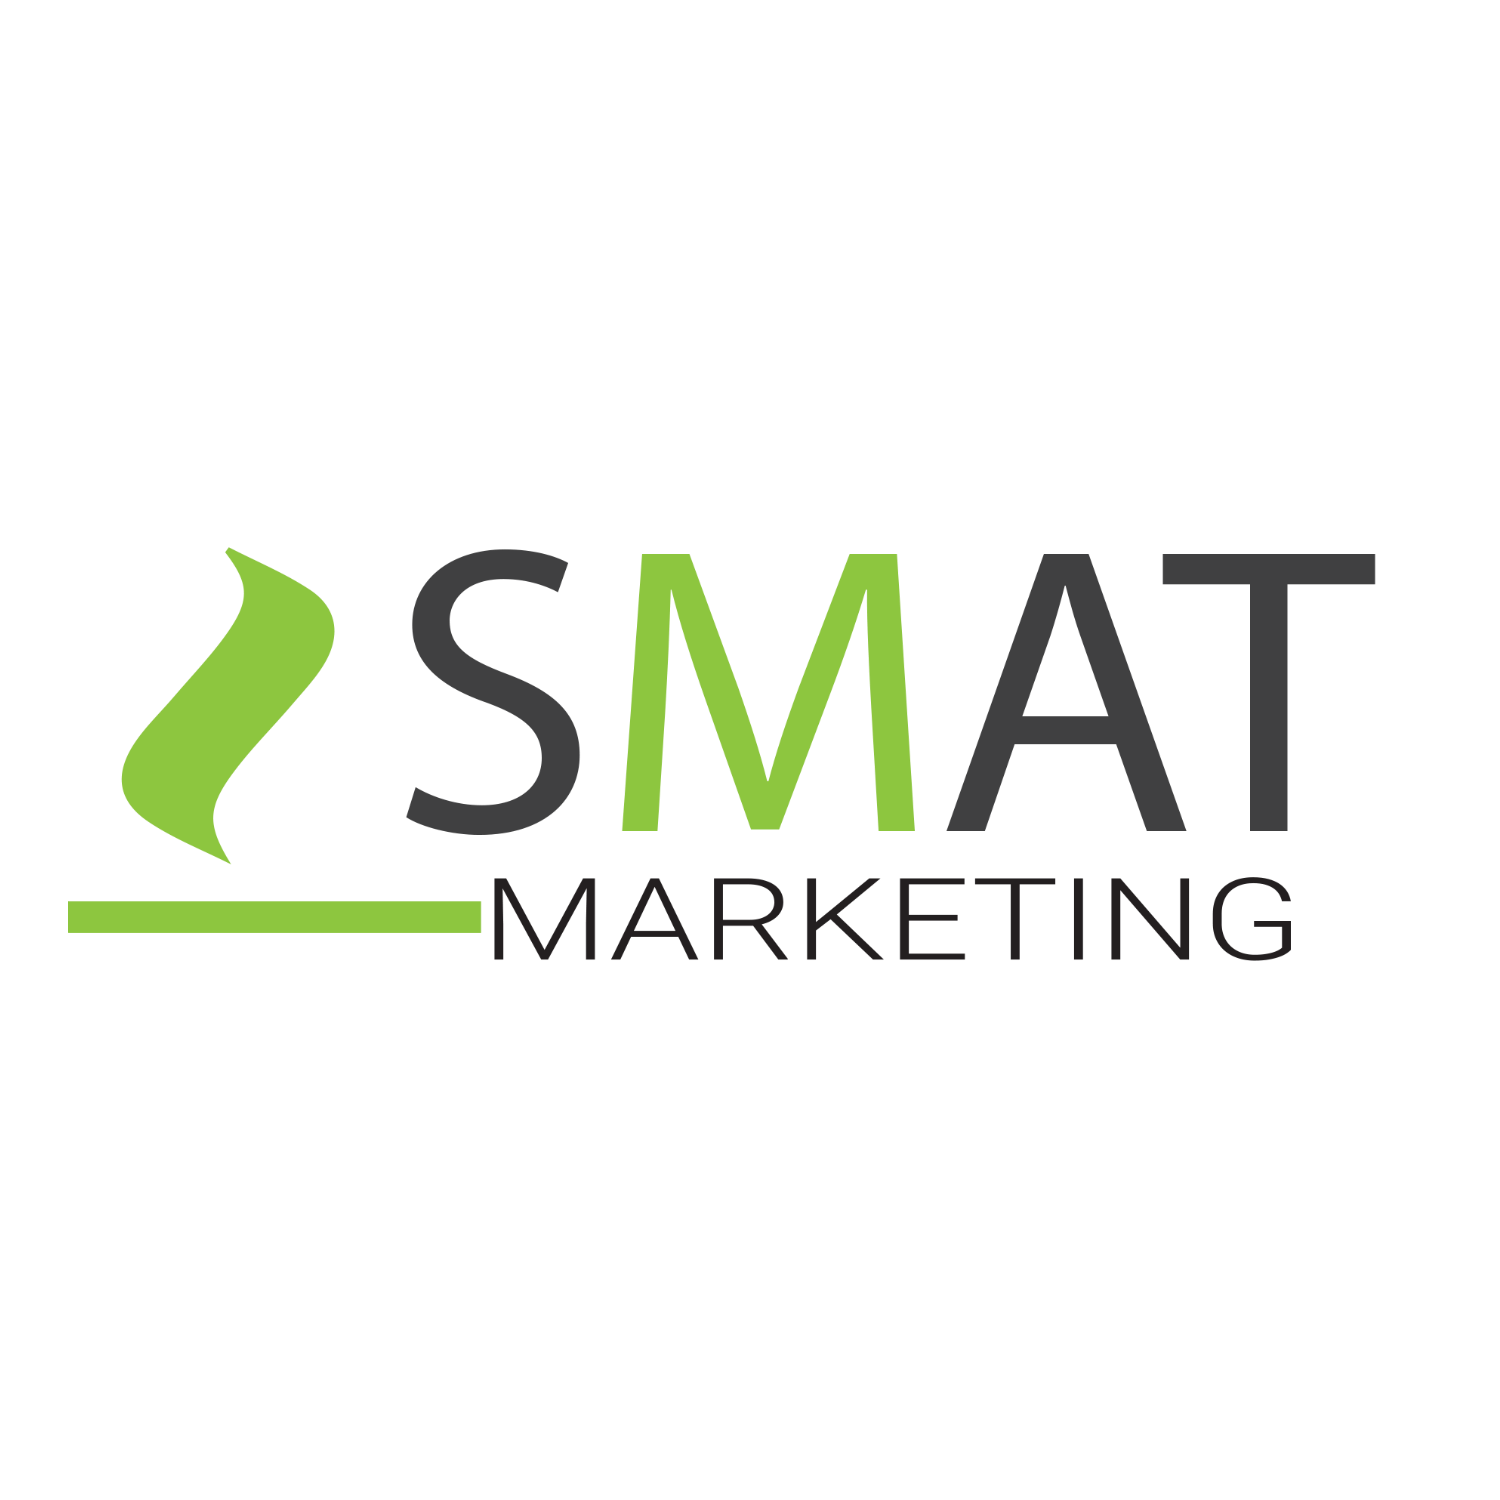 SMAT MARKETING LIMITED image